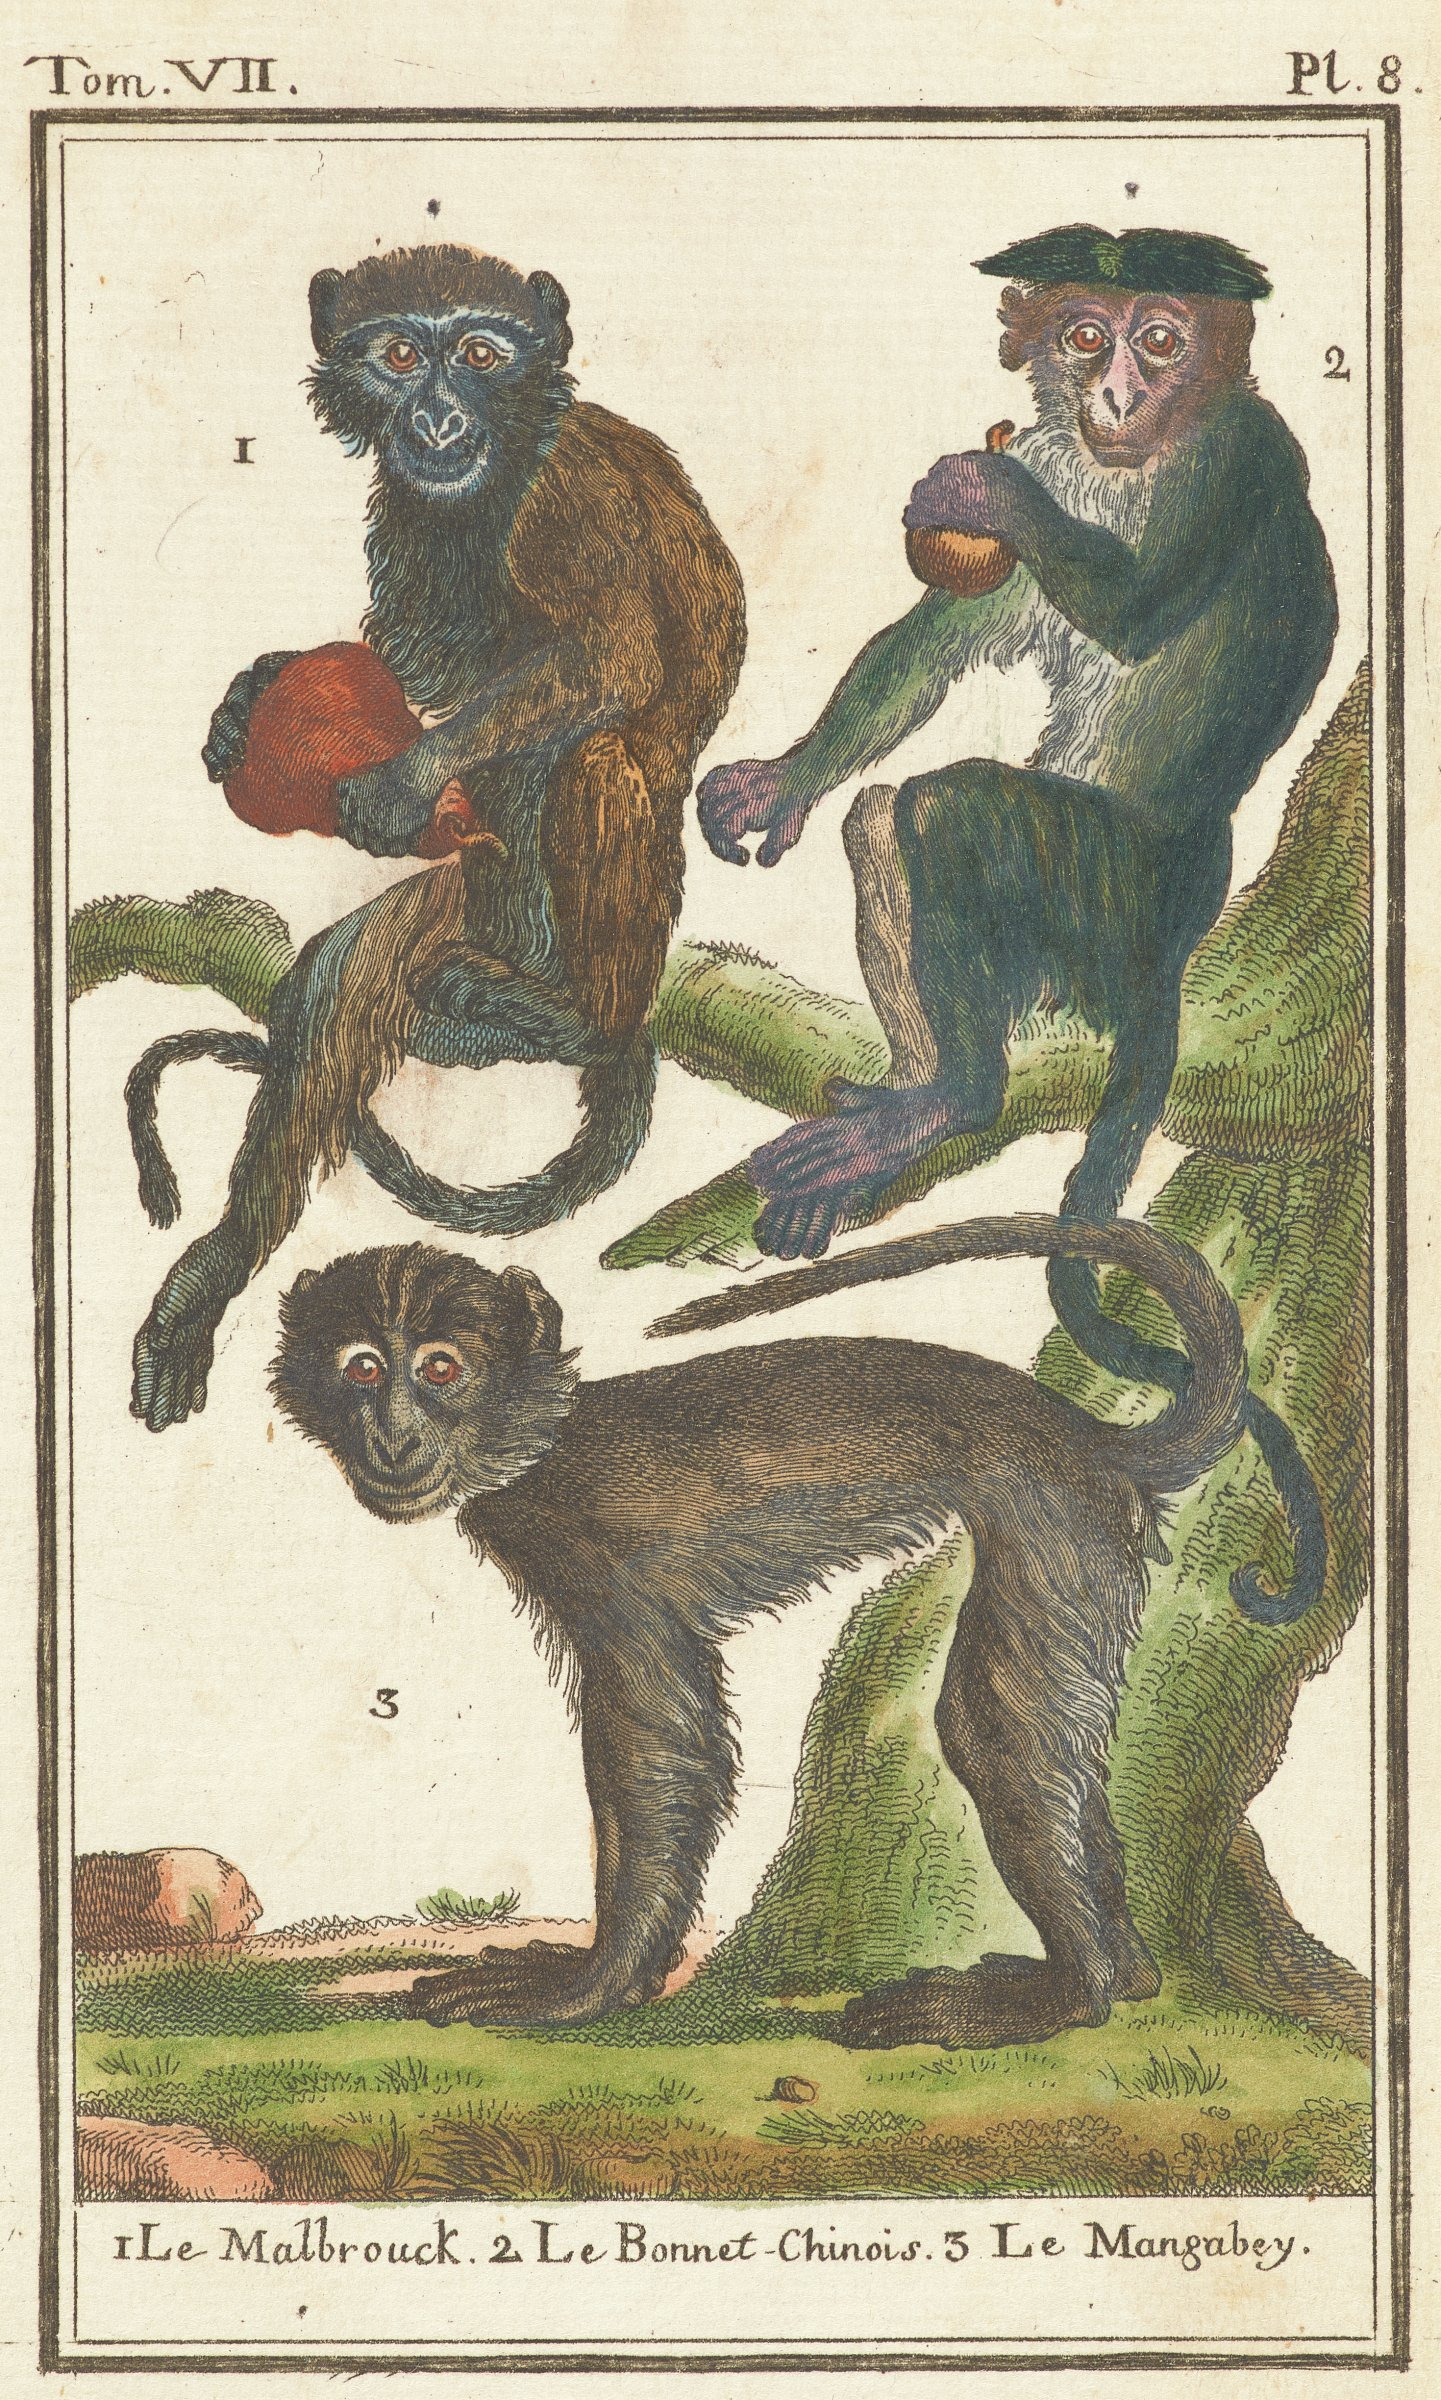 Three monkeys are depicted. Two monkeys sit on a tree limb holding fruit. A thrid monkey stands on all fours on the ground beneath them.